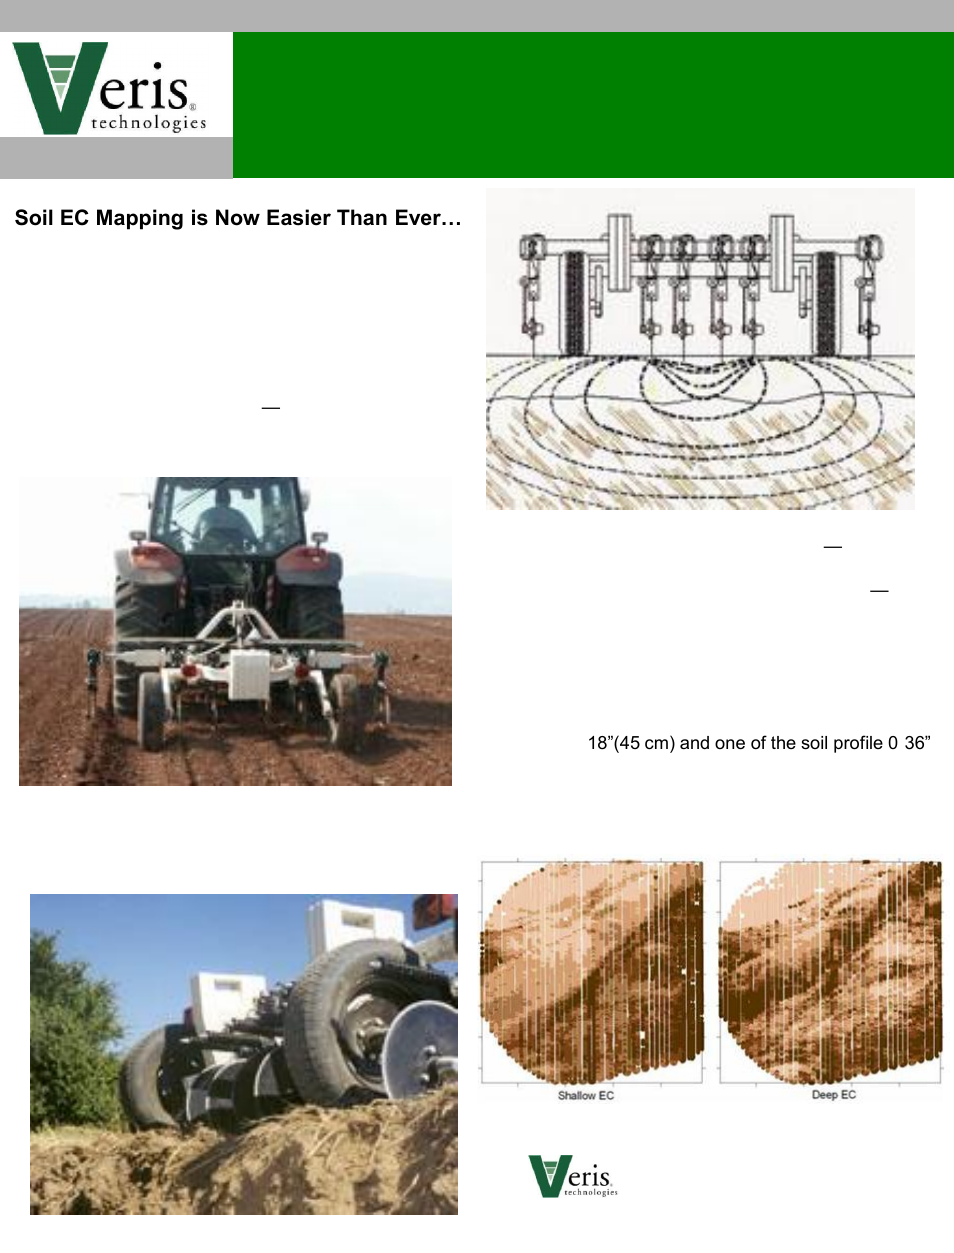 Veris technologies 3150 c soil ec mapping system product for Soil as a system